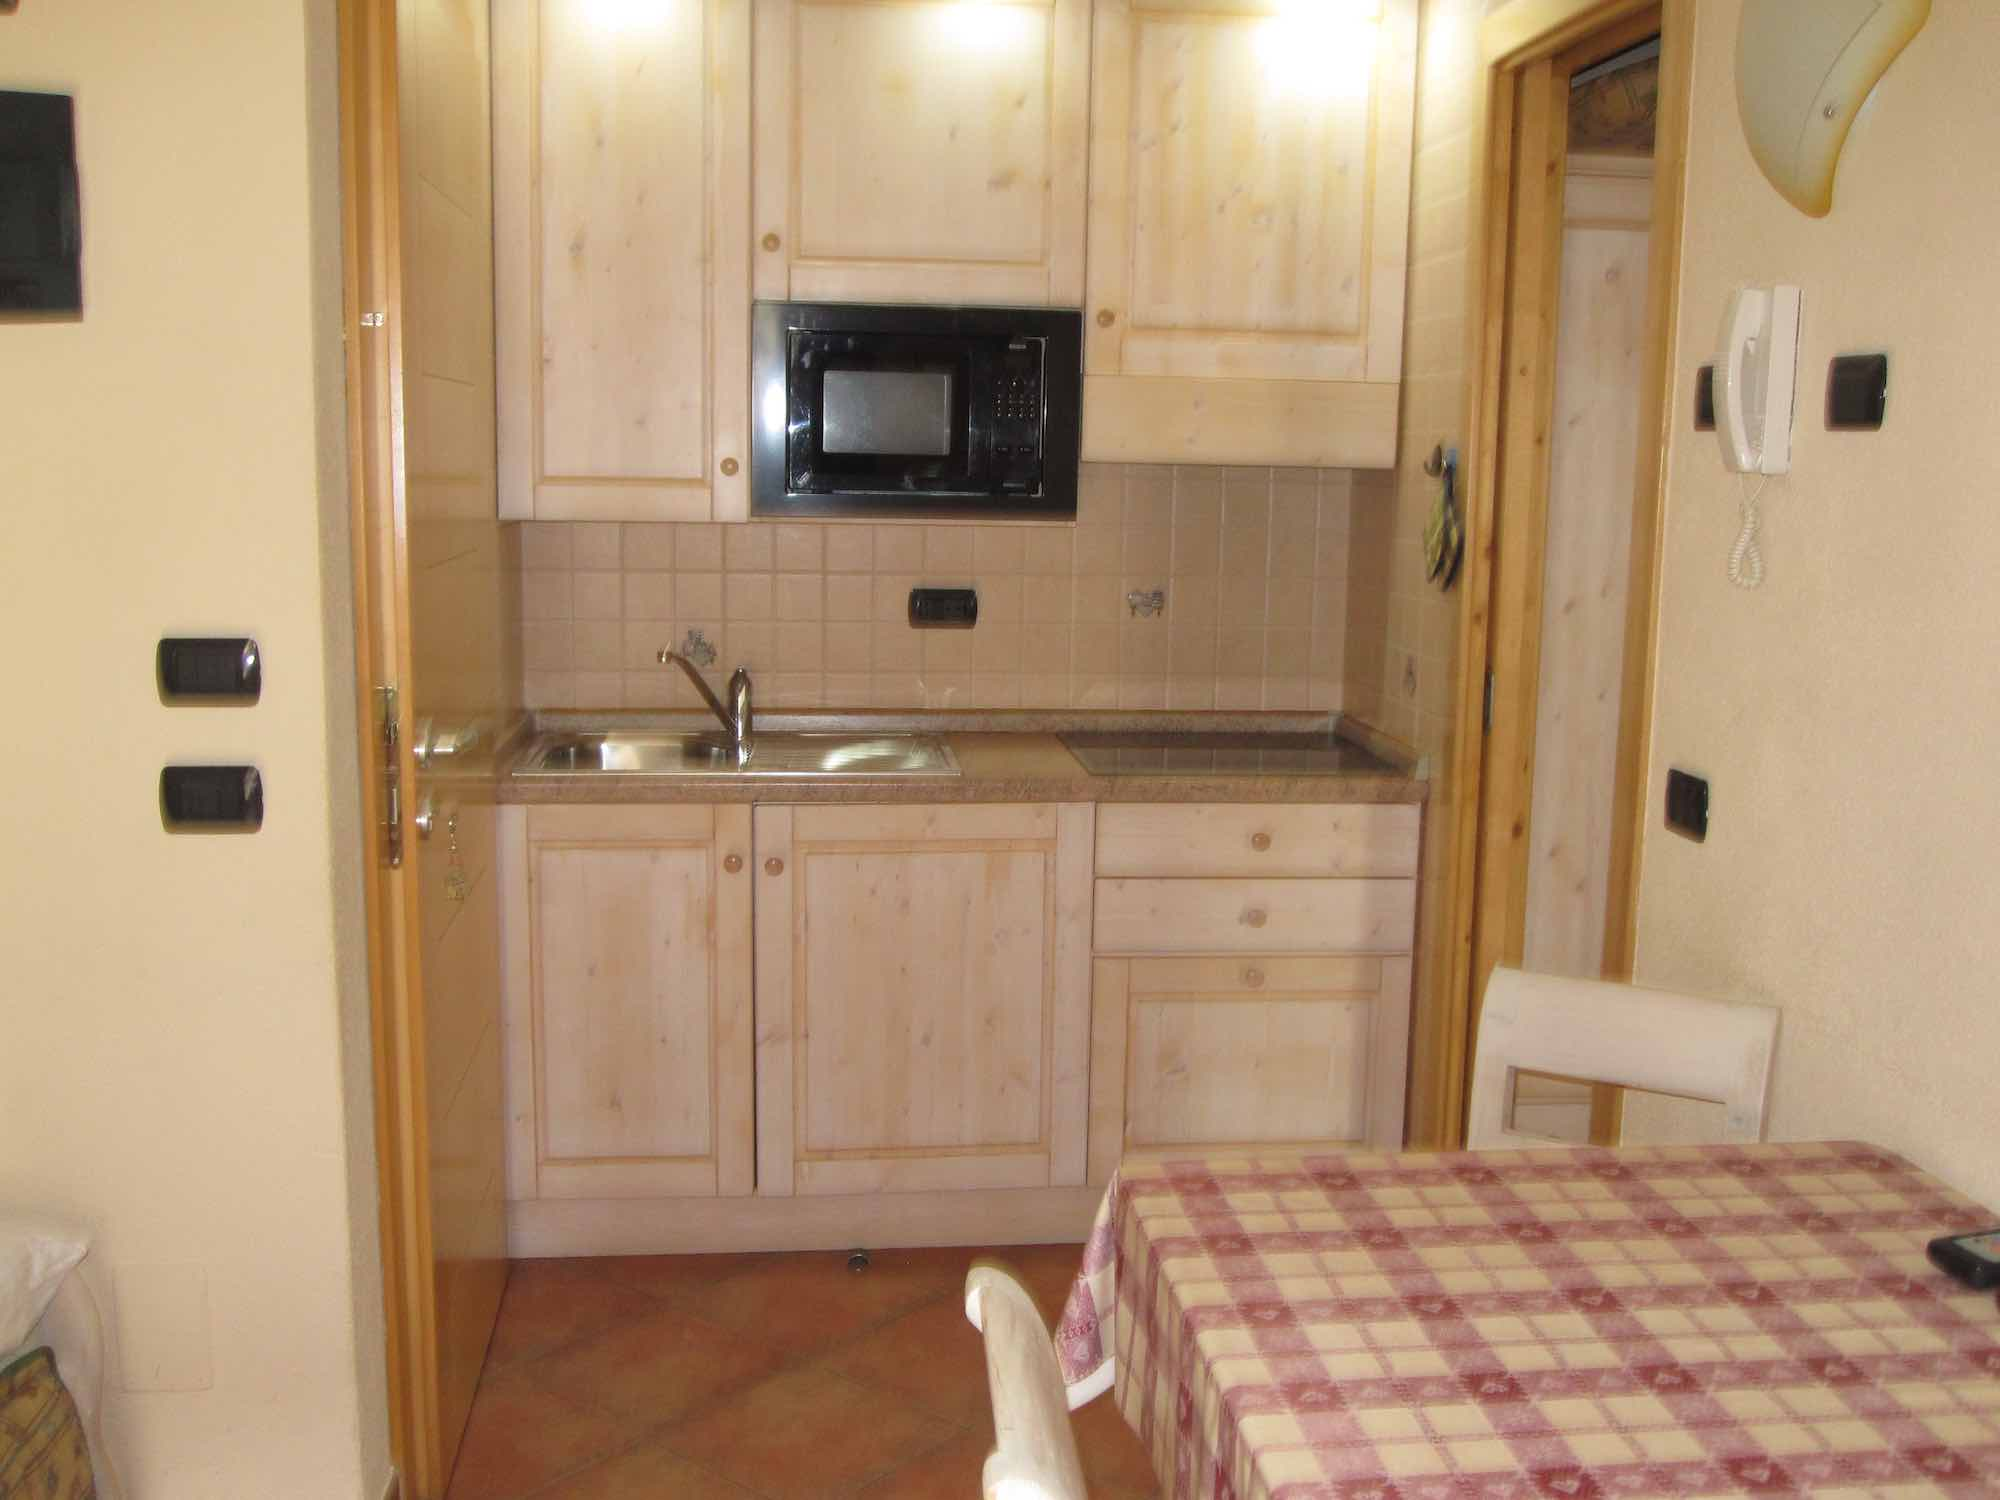 Baita La Broina - Via Florin, 24 - Apartment - Appartamento 9 1